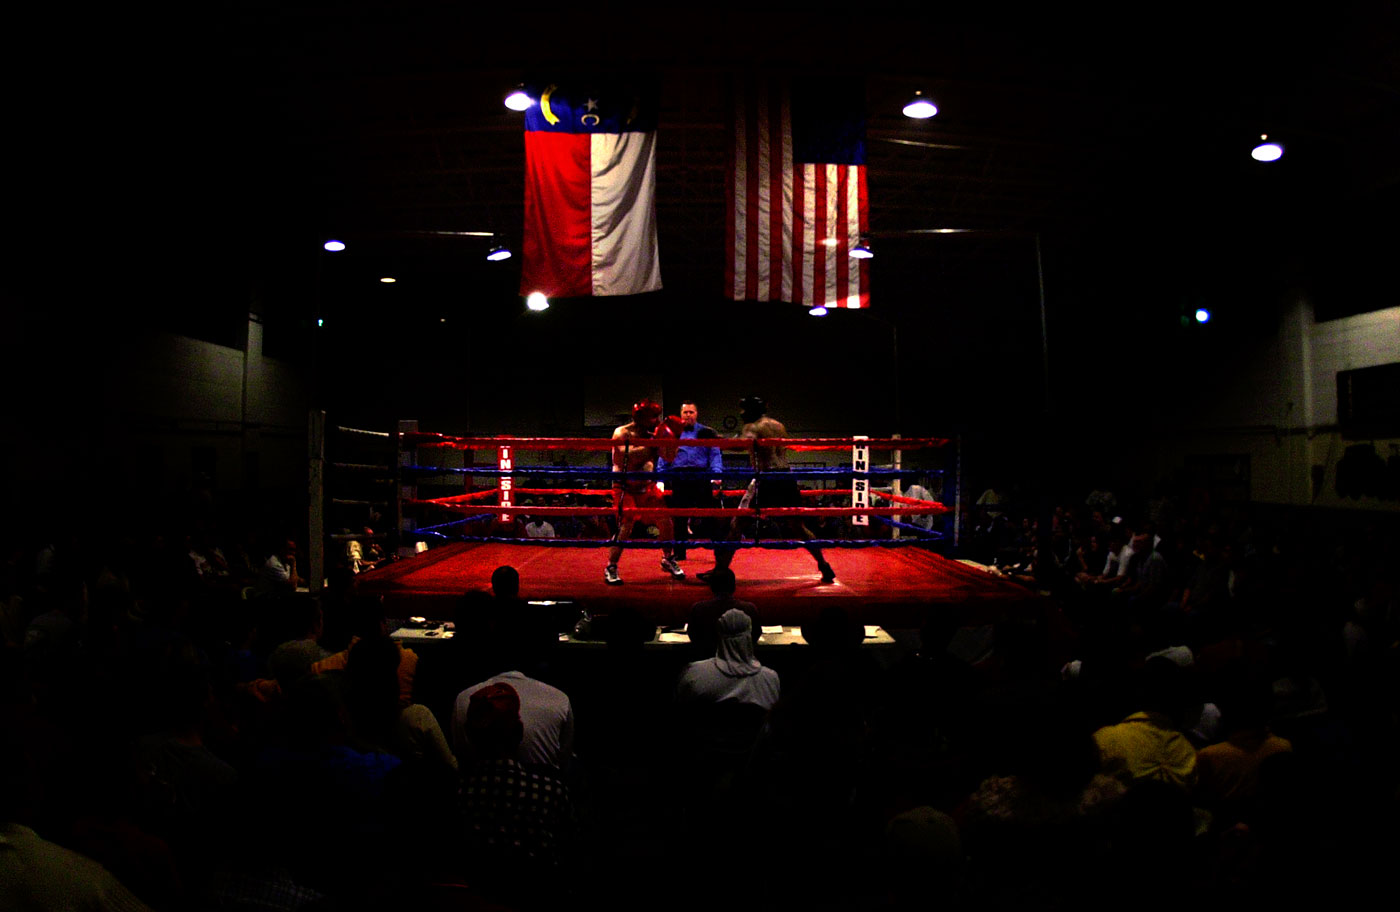 A pair of fighters begin their fight before a capacity crowd.